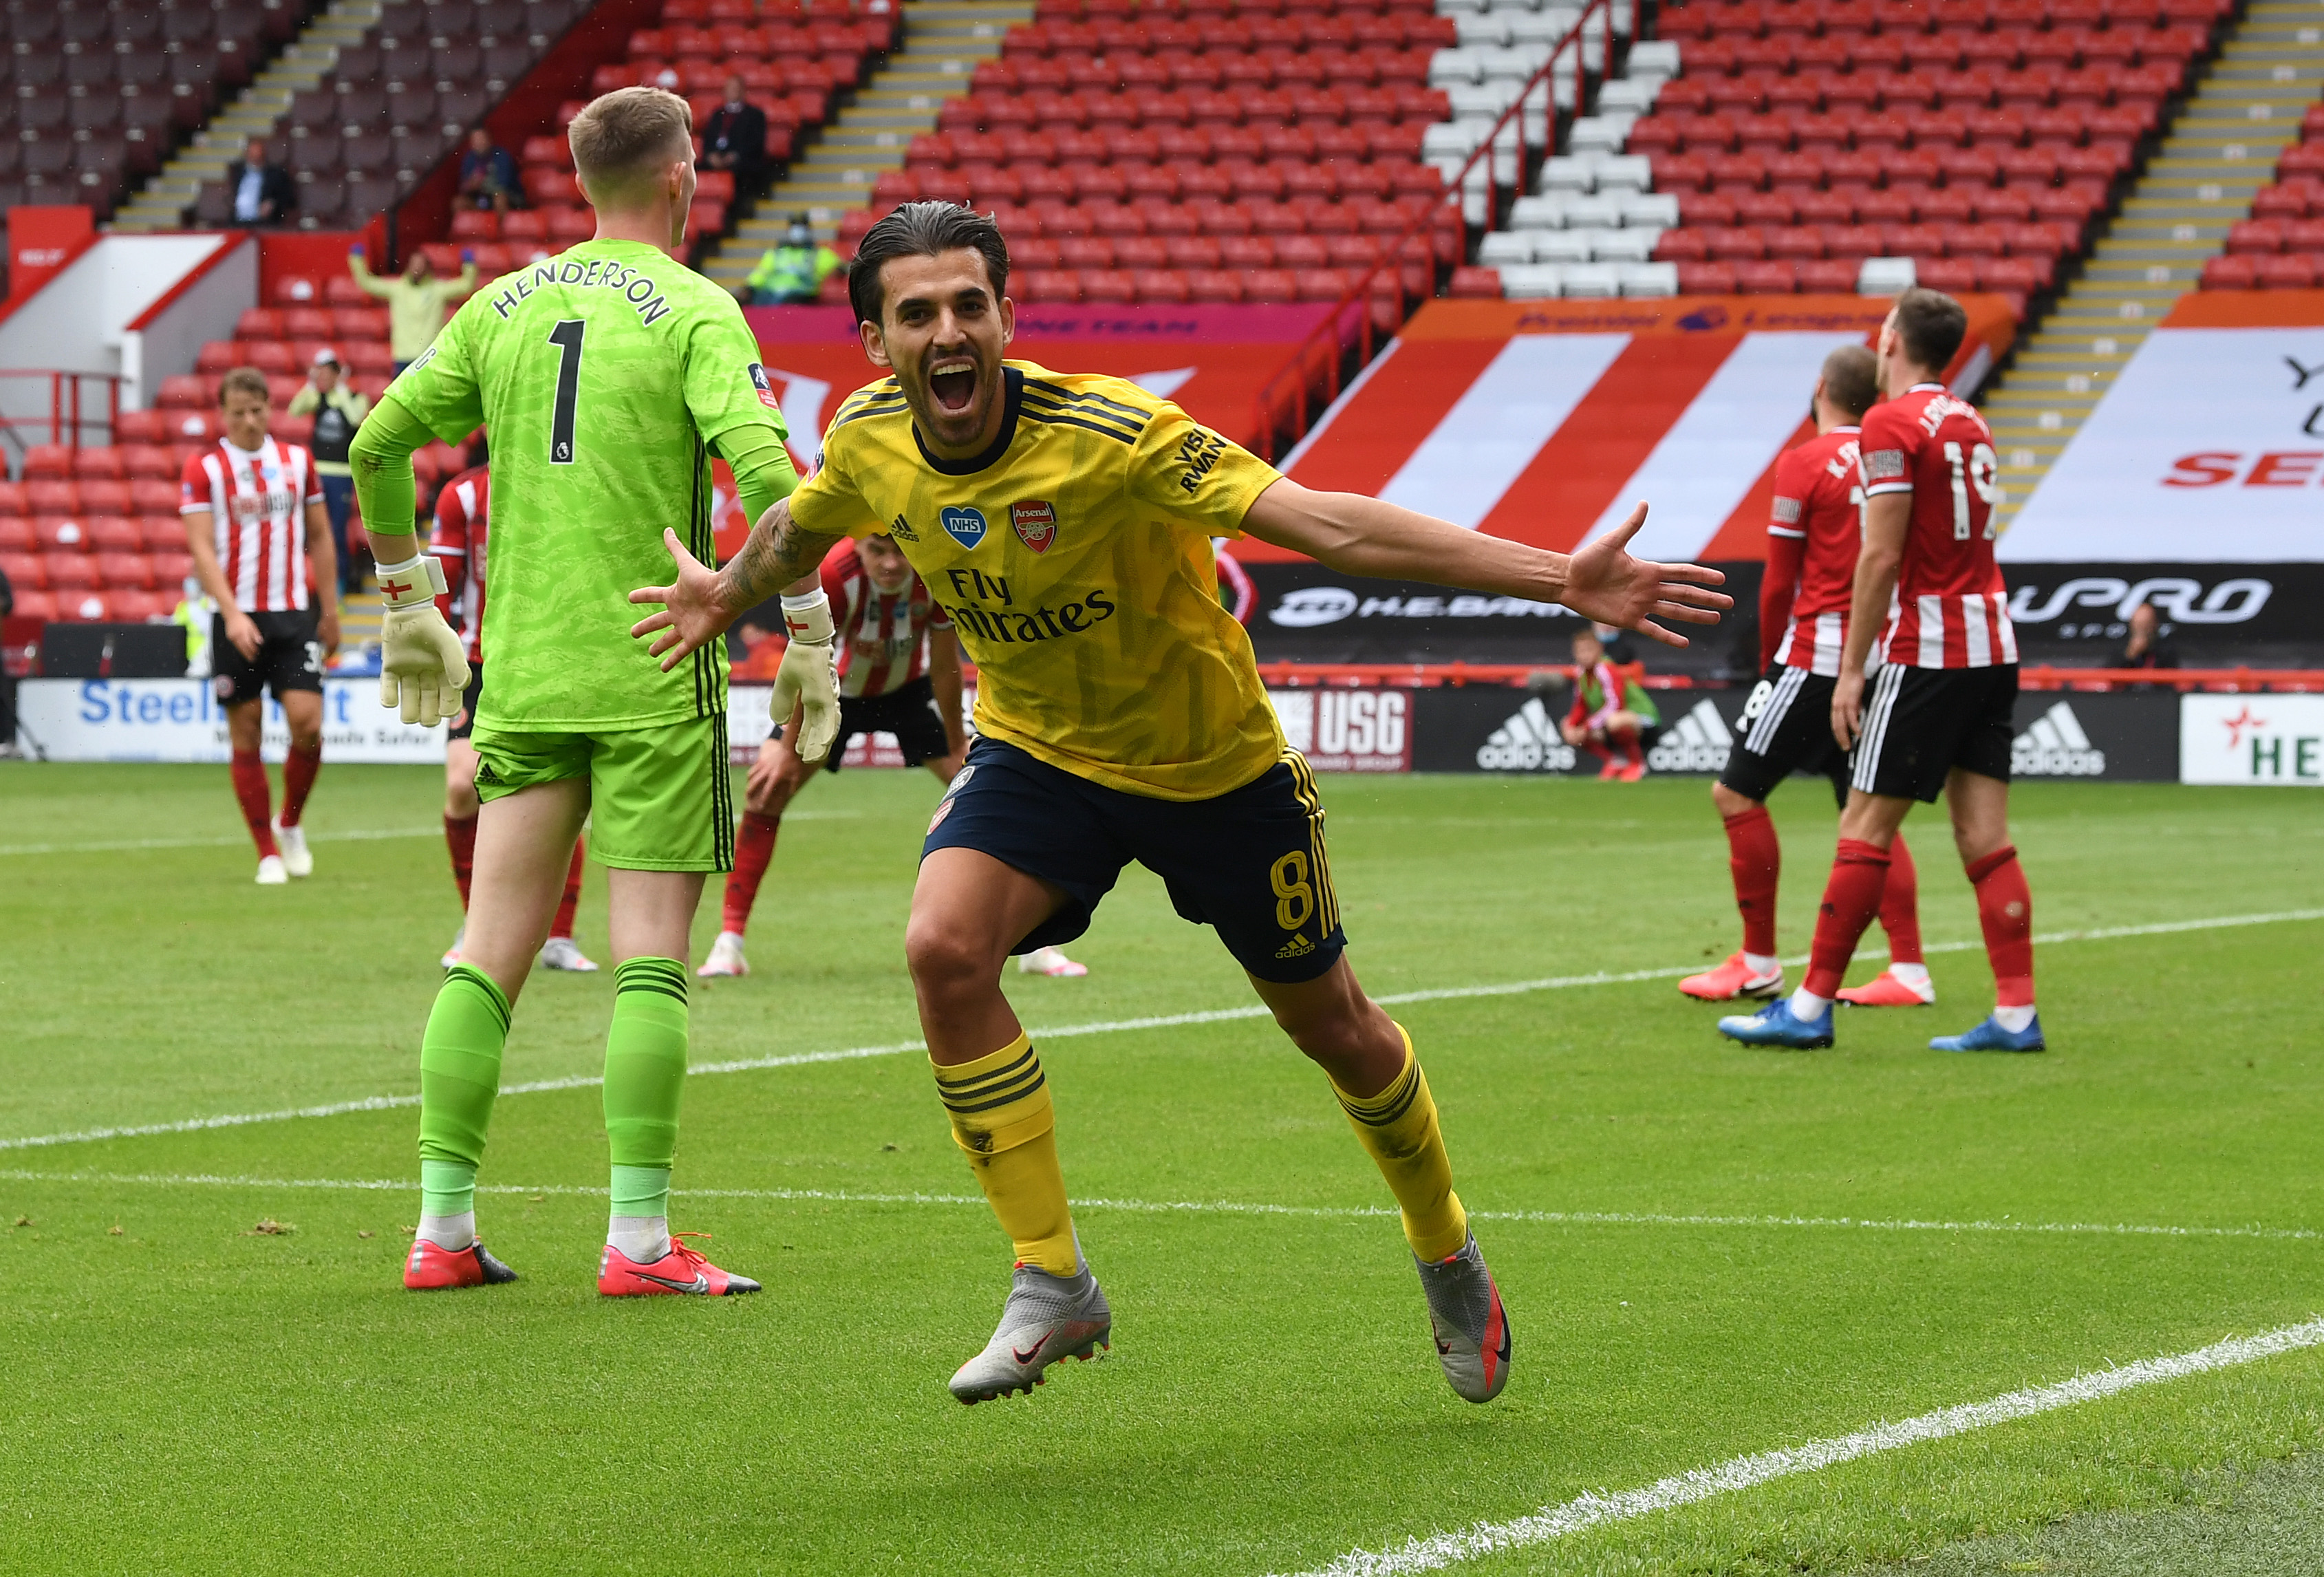 Dani Ceballos is key to Arsenal's quest for European football and Mikel Arteta should sign him permanently f thumbnail